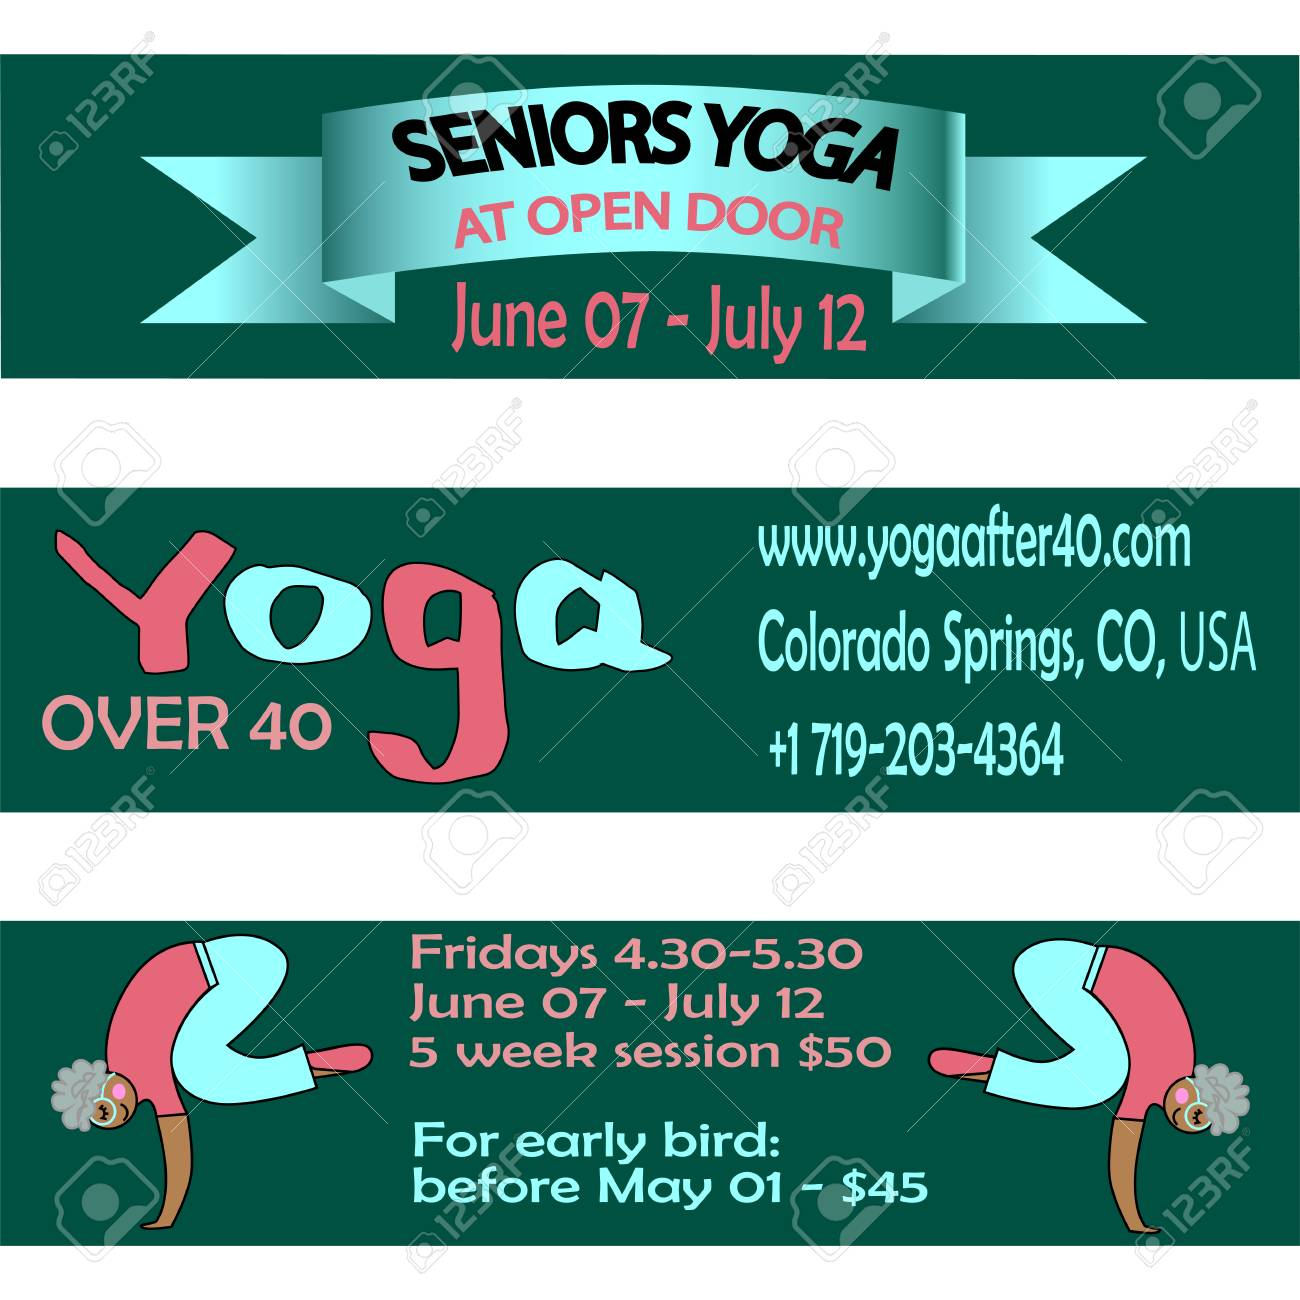 Yoga Banner Design Illustration Royalty Free Cliparts Vectors And Stock Illustration Image 98465189